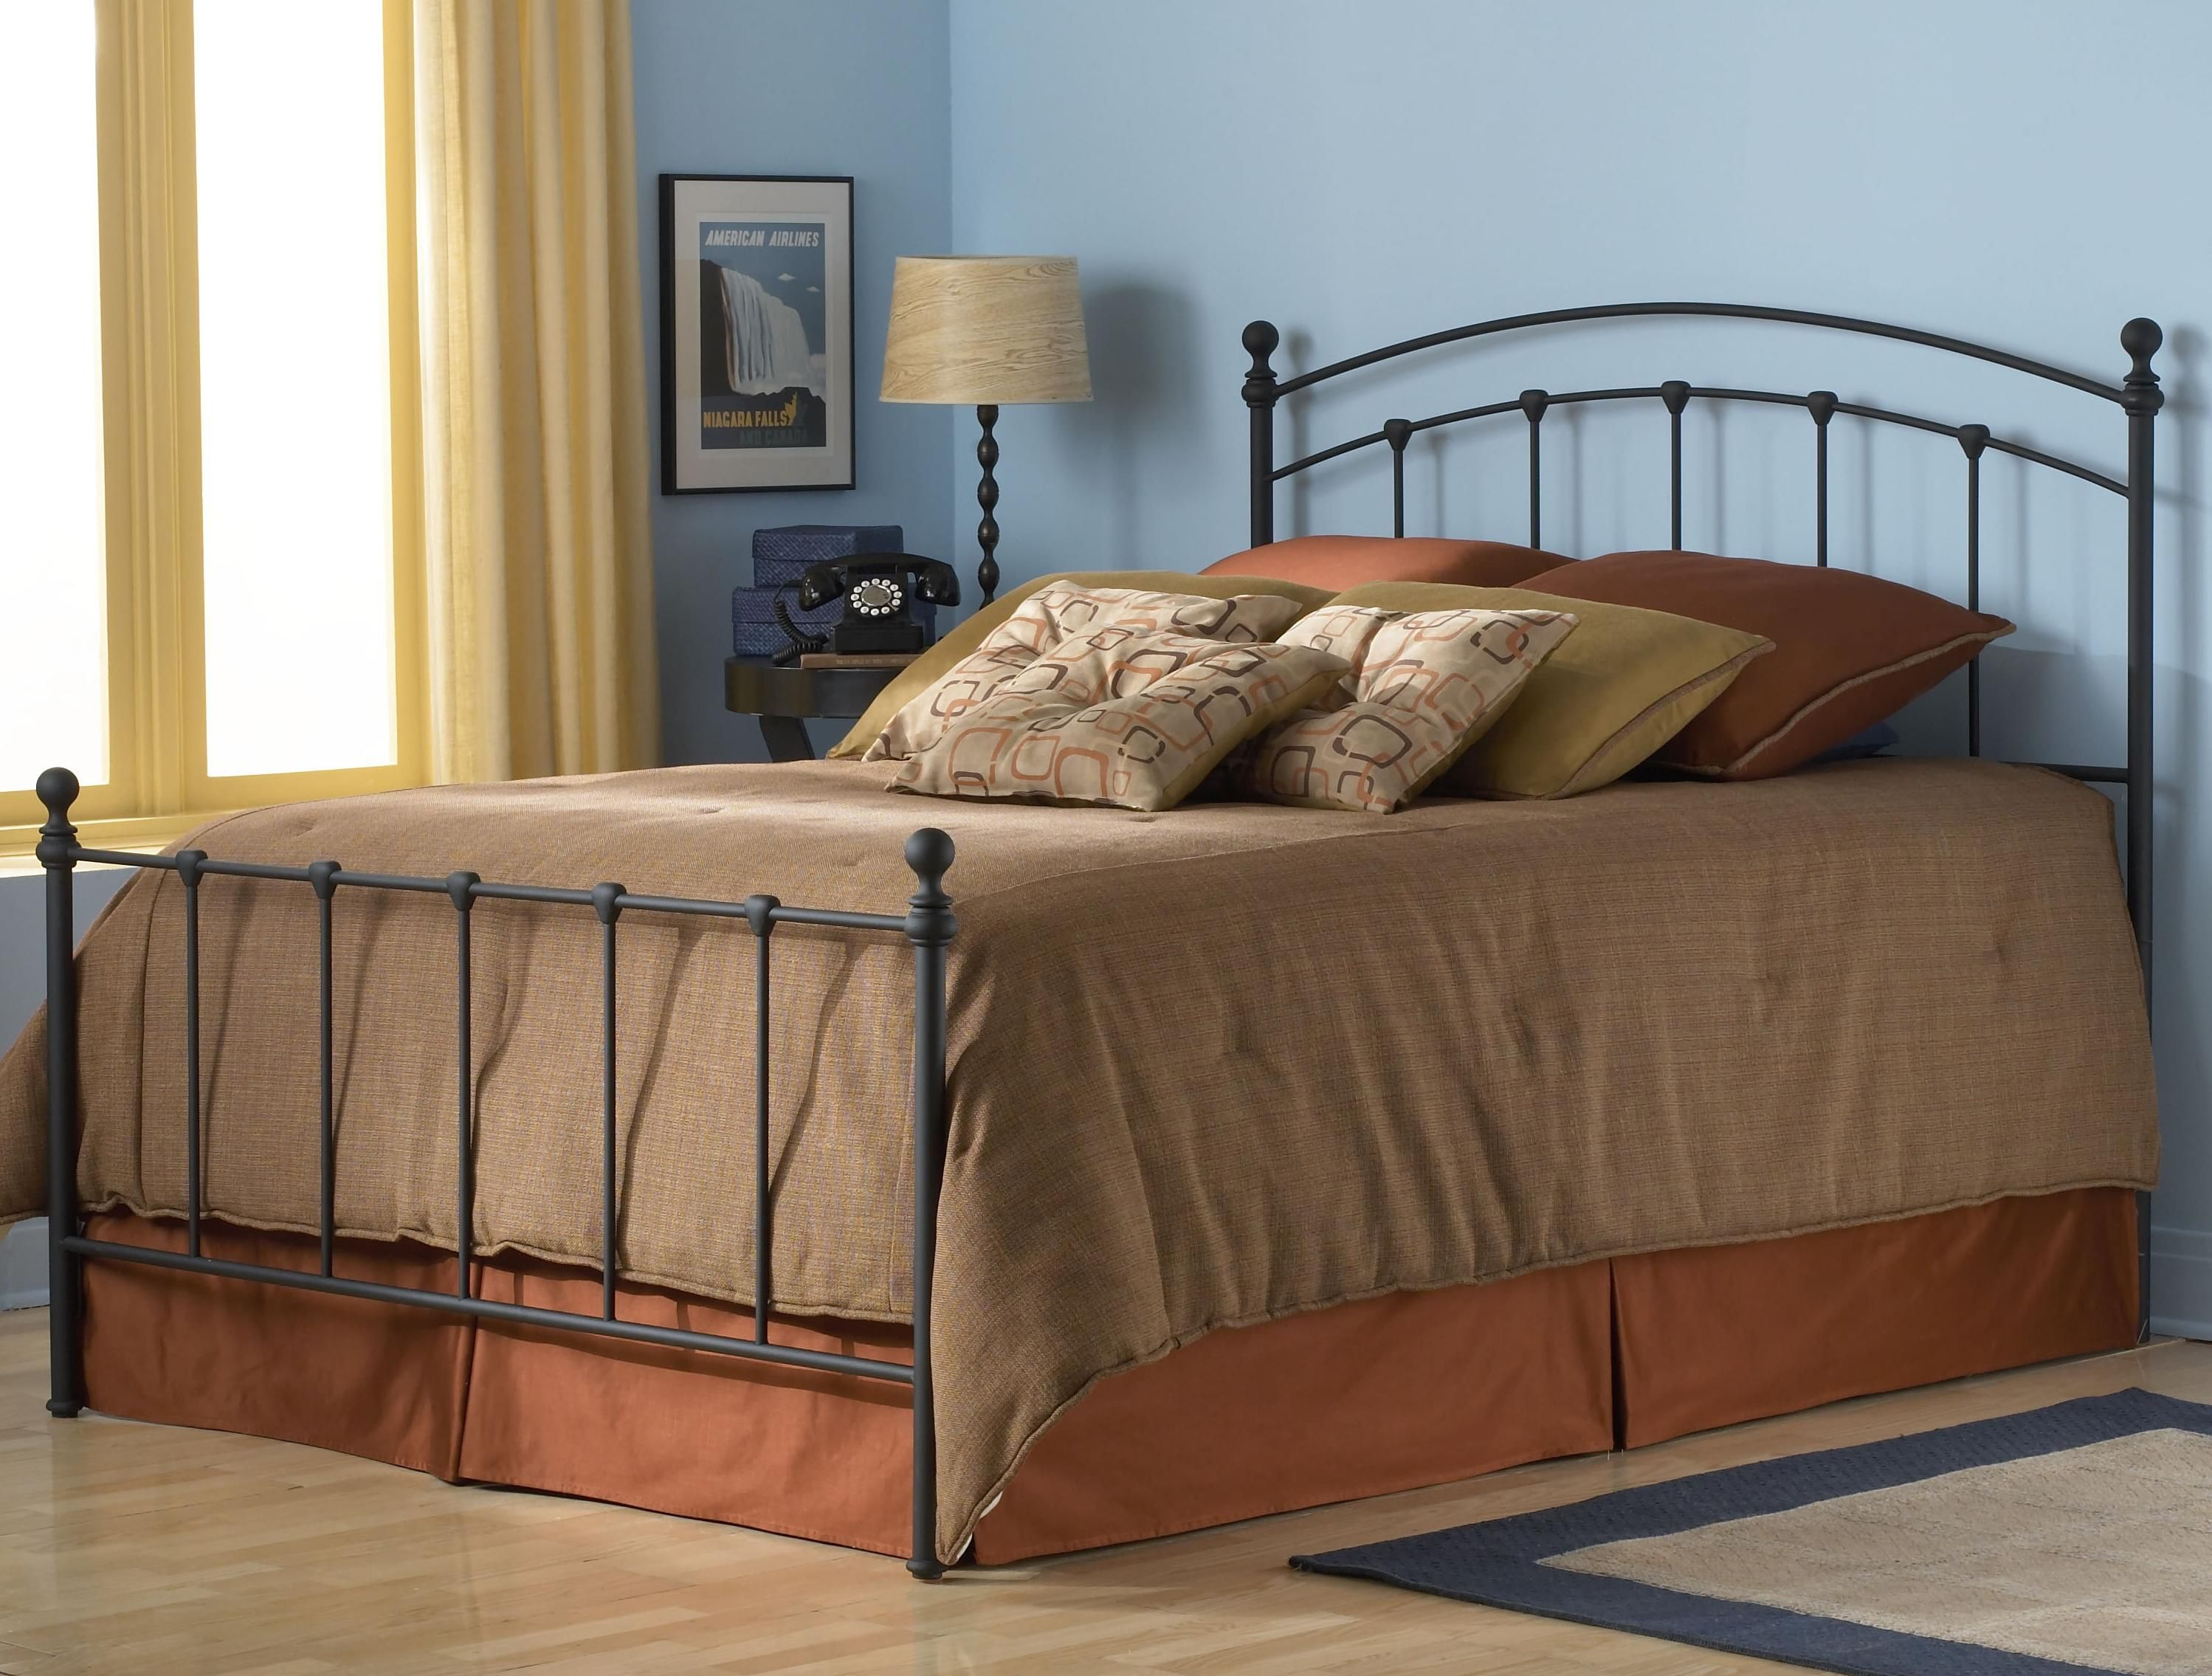 Metal Beds Queen Sanford Bed w/ Frame by Fashion Bed Group